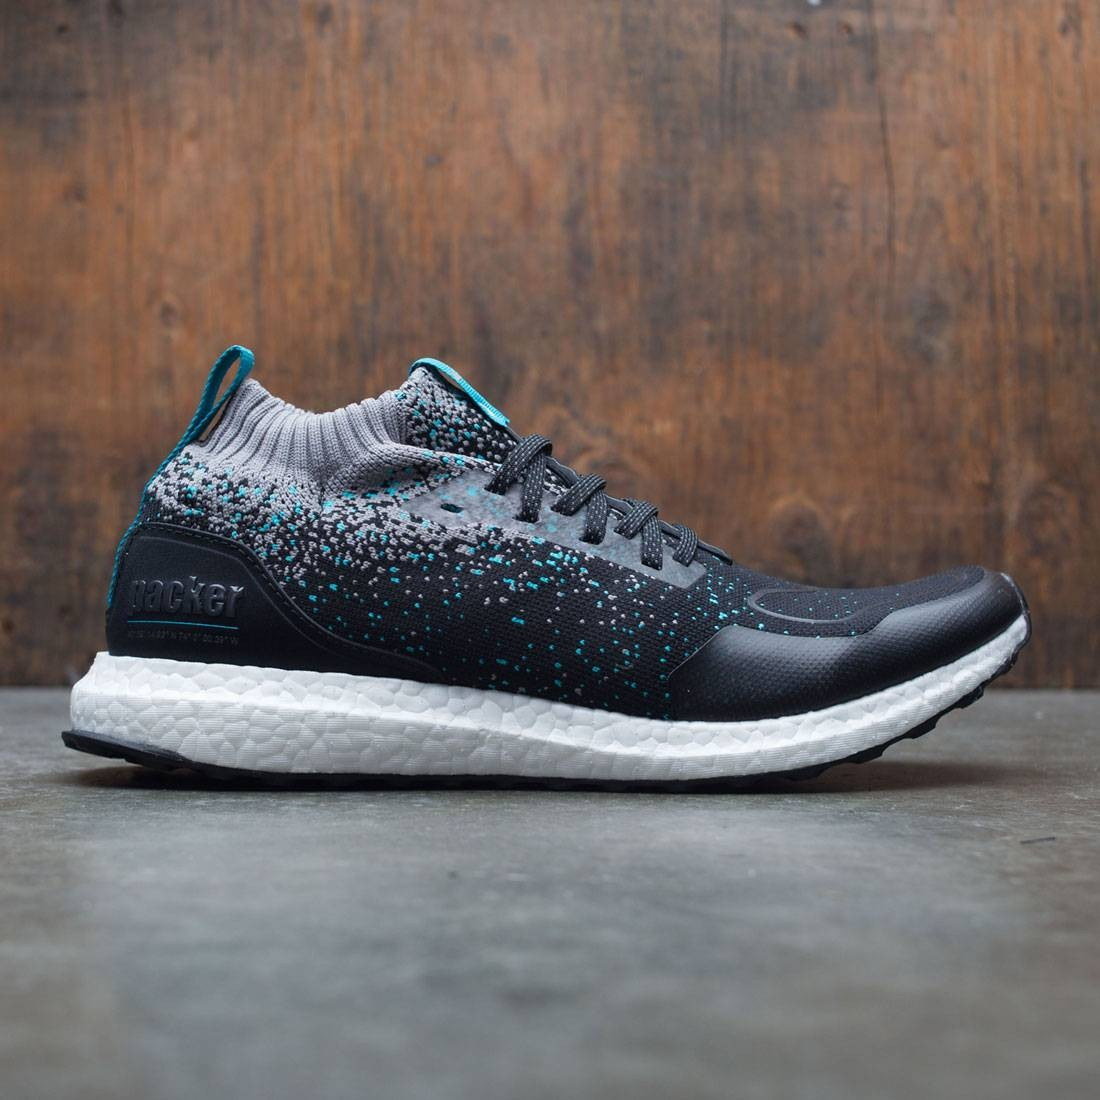 online store 336aa 6dc3e Adidas Consortium x Packer x Solebox Men UltraBOOST Mid Sneaker Exchange  (black / core black / energy blue)